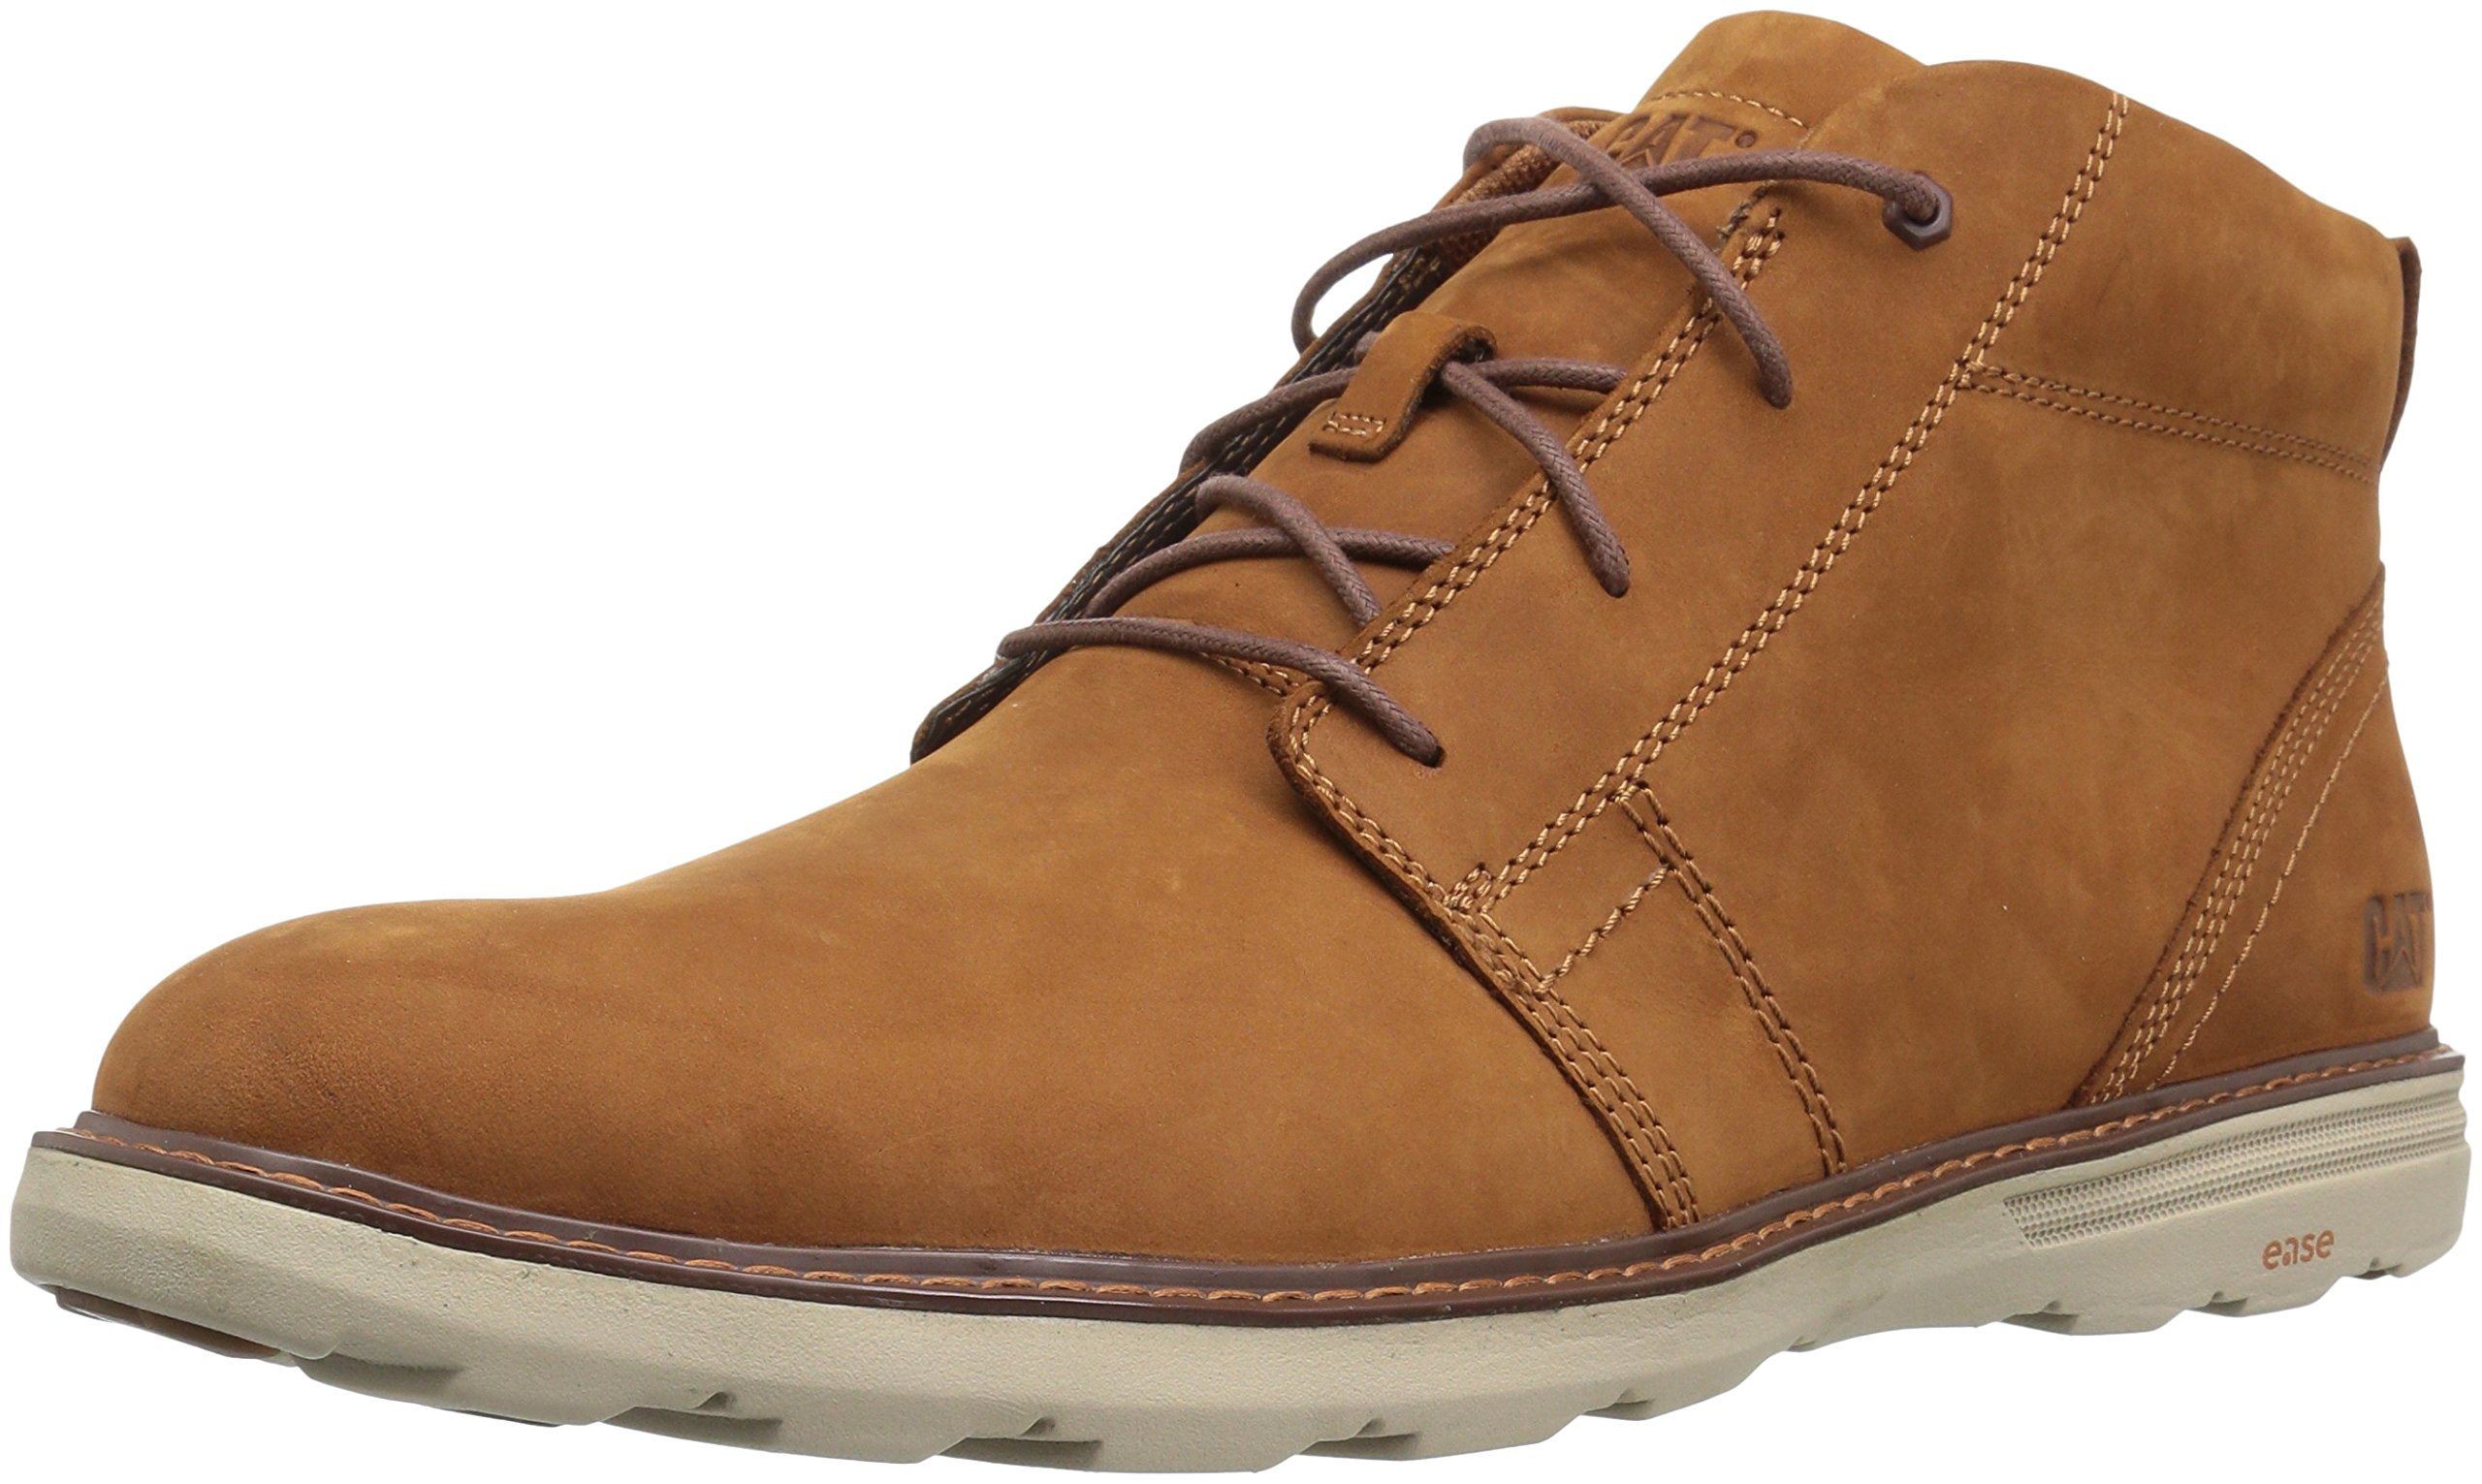 Caterpillar Men's Trey Chukka Boot, Glazed Ginger, 8.5 D US